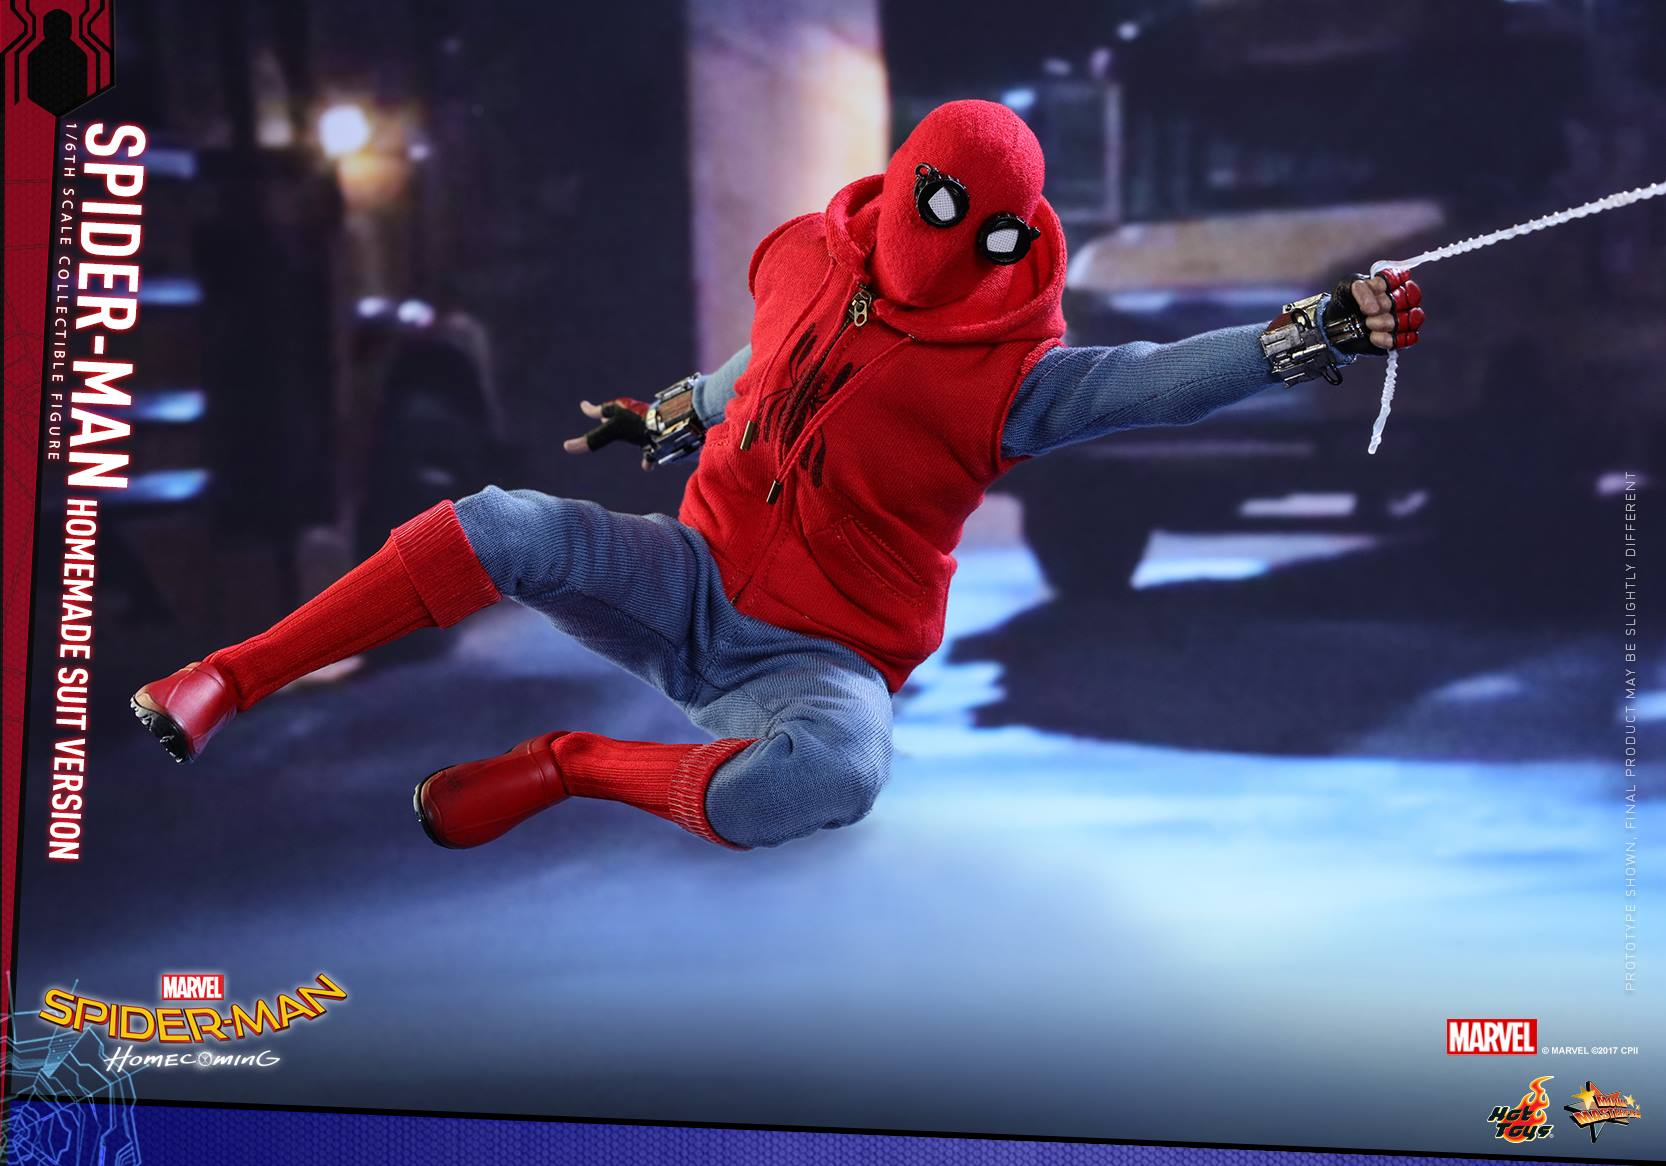 Homecoming Hot Toy (HomeMade Suit)